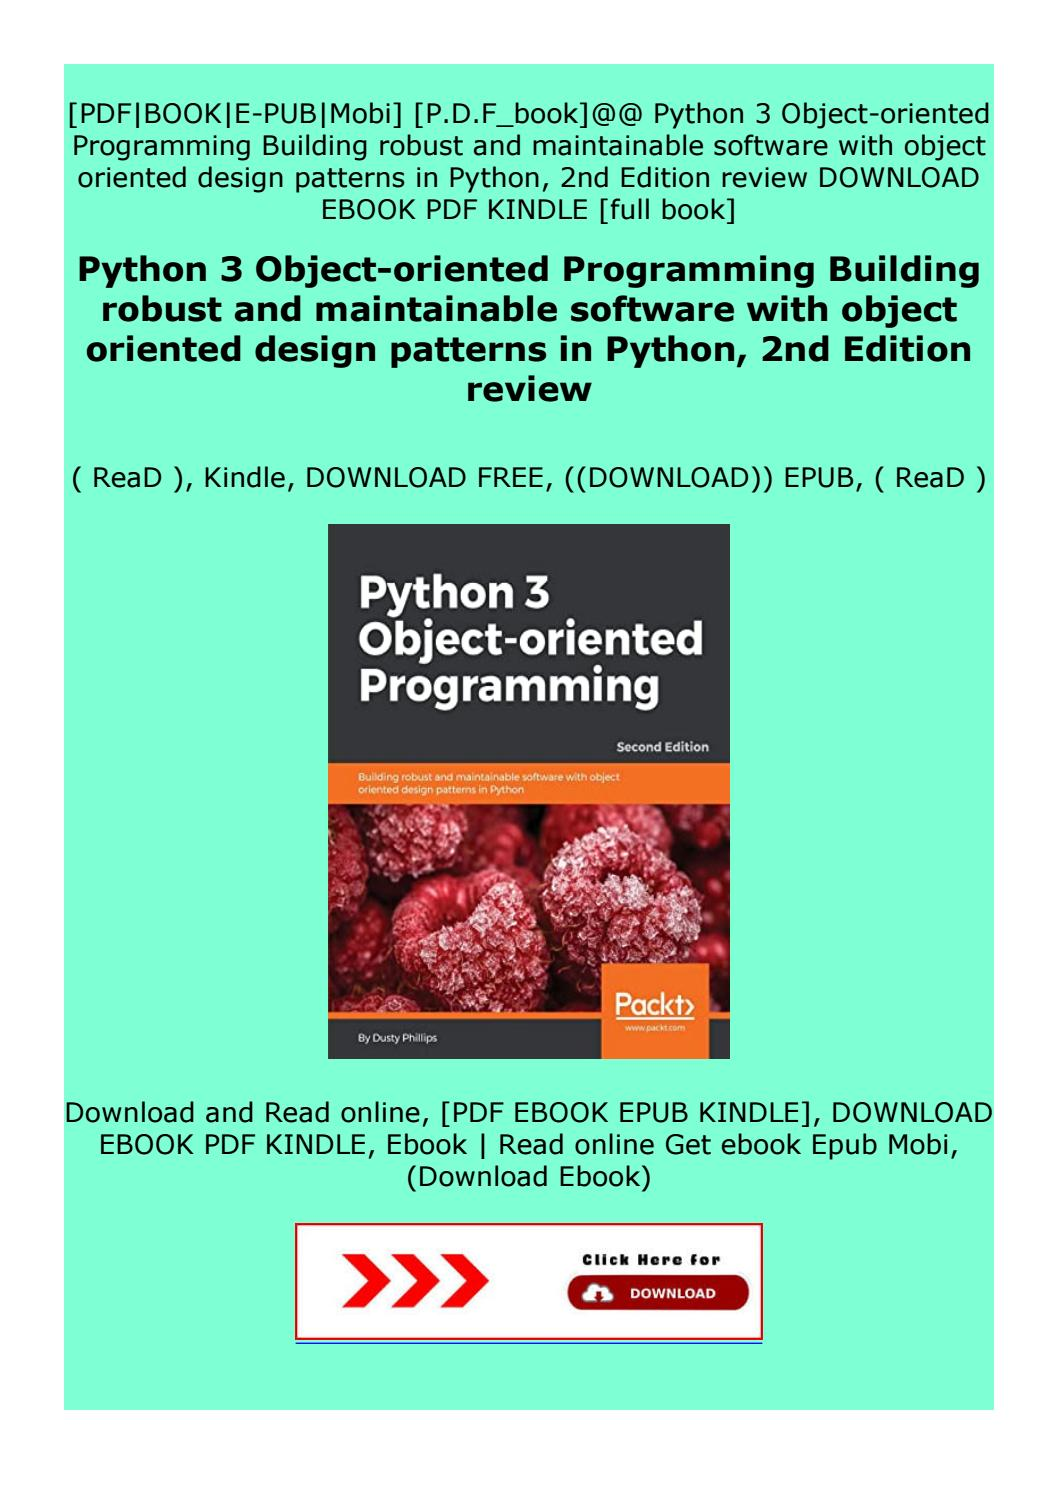 Read Online Python 3 Object Oriented Programming Building Robust And Maintainable Software By Jhgjythghrjhase Issuu